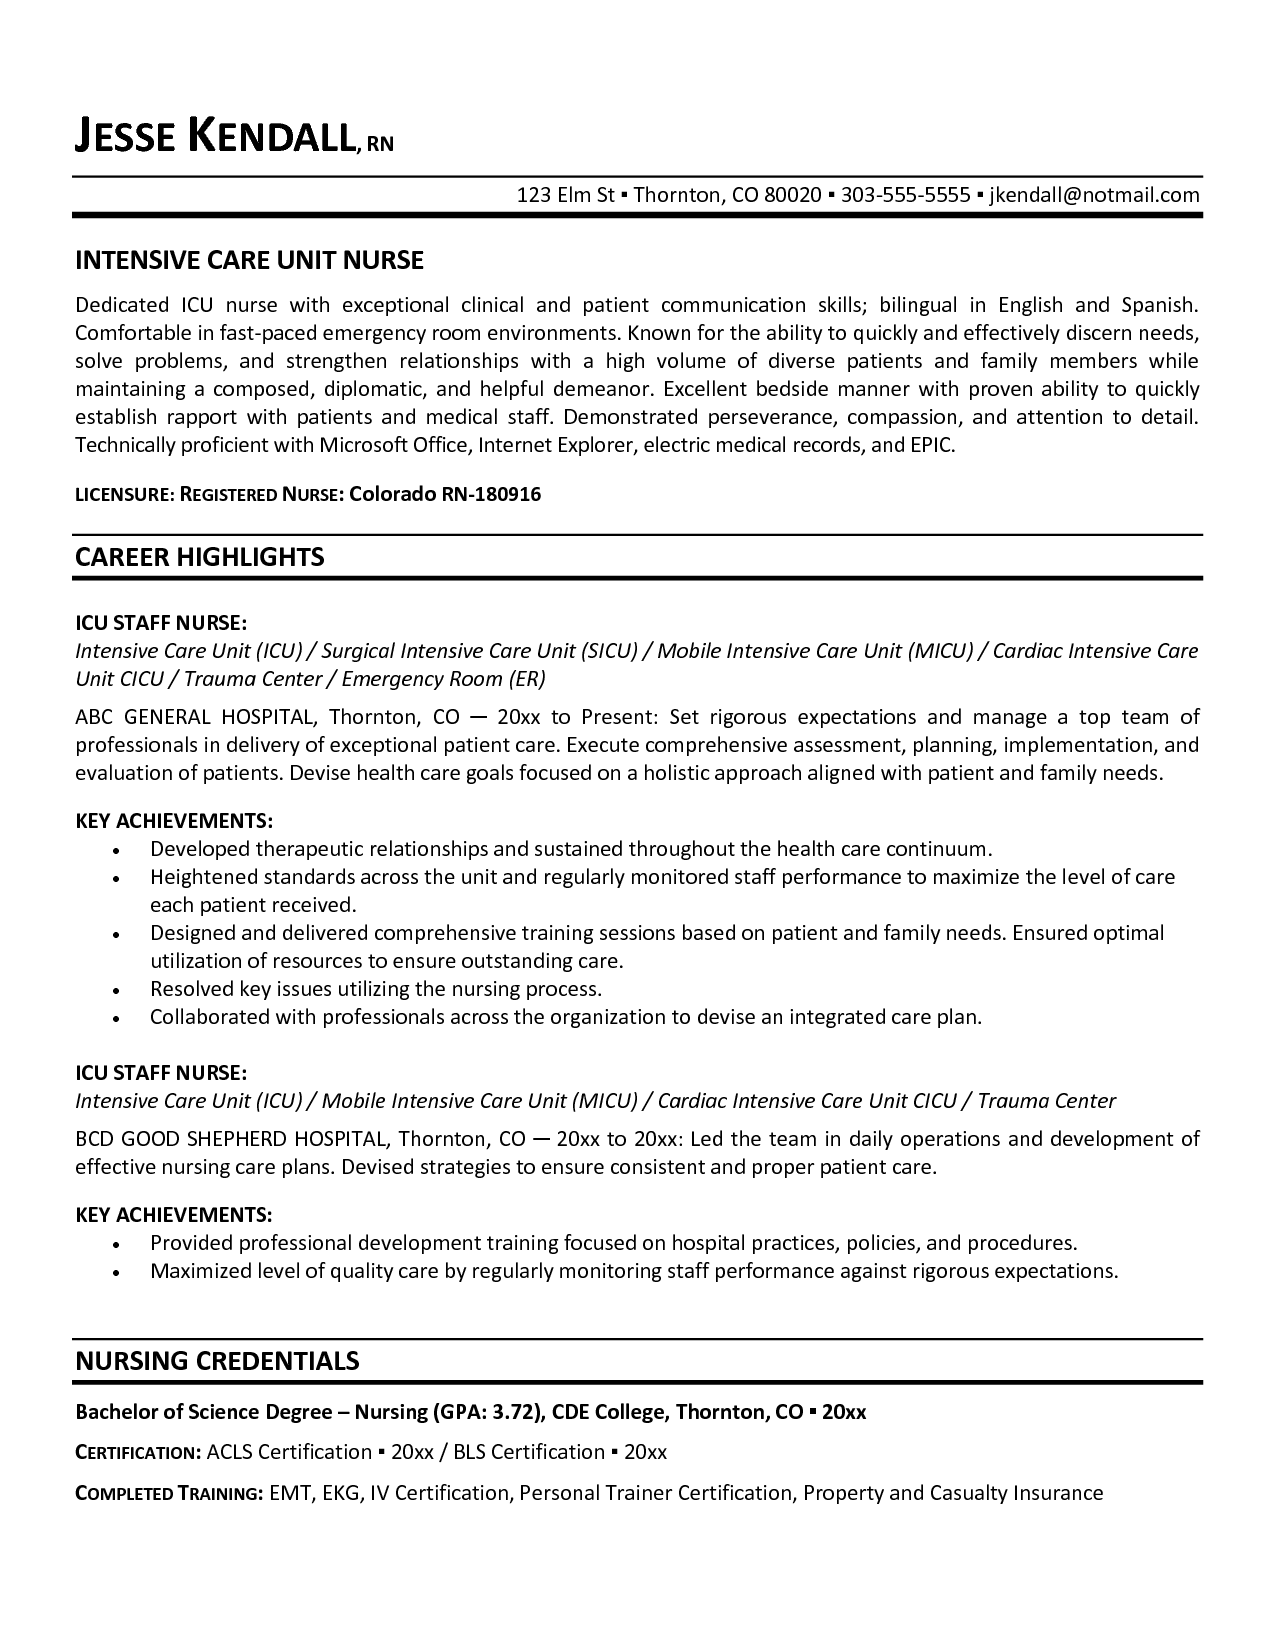 Mba Resume Template Thesis Statement For Marketing Plansample Statement Of Purpose